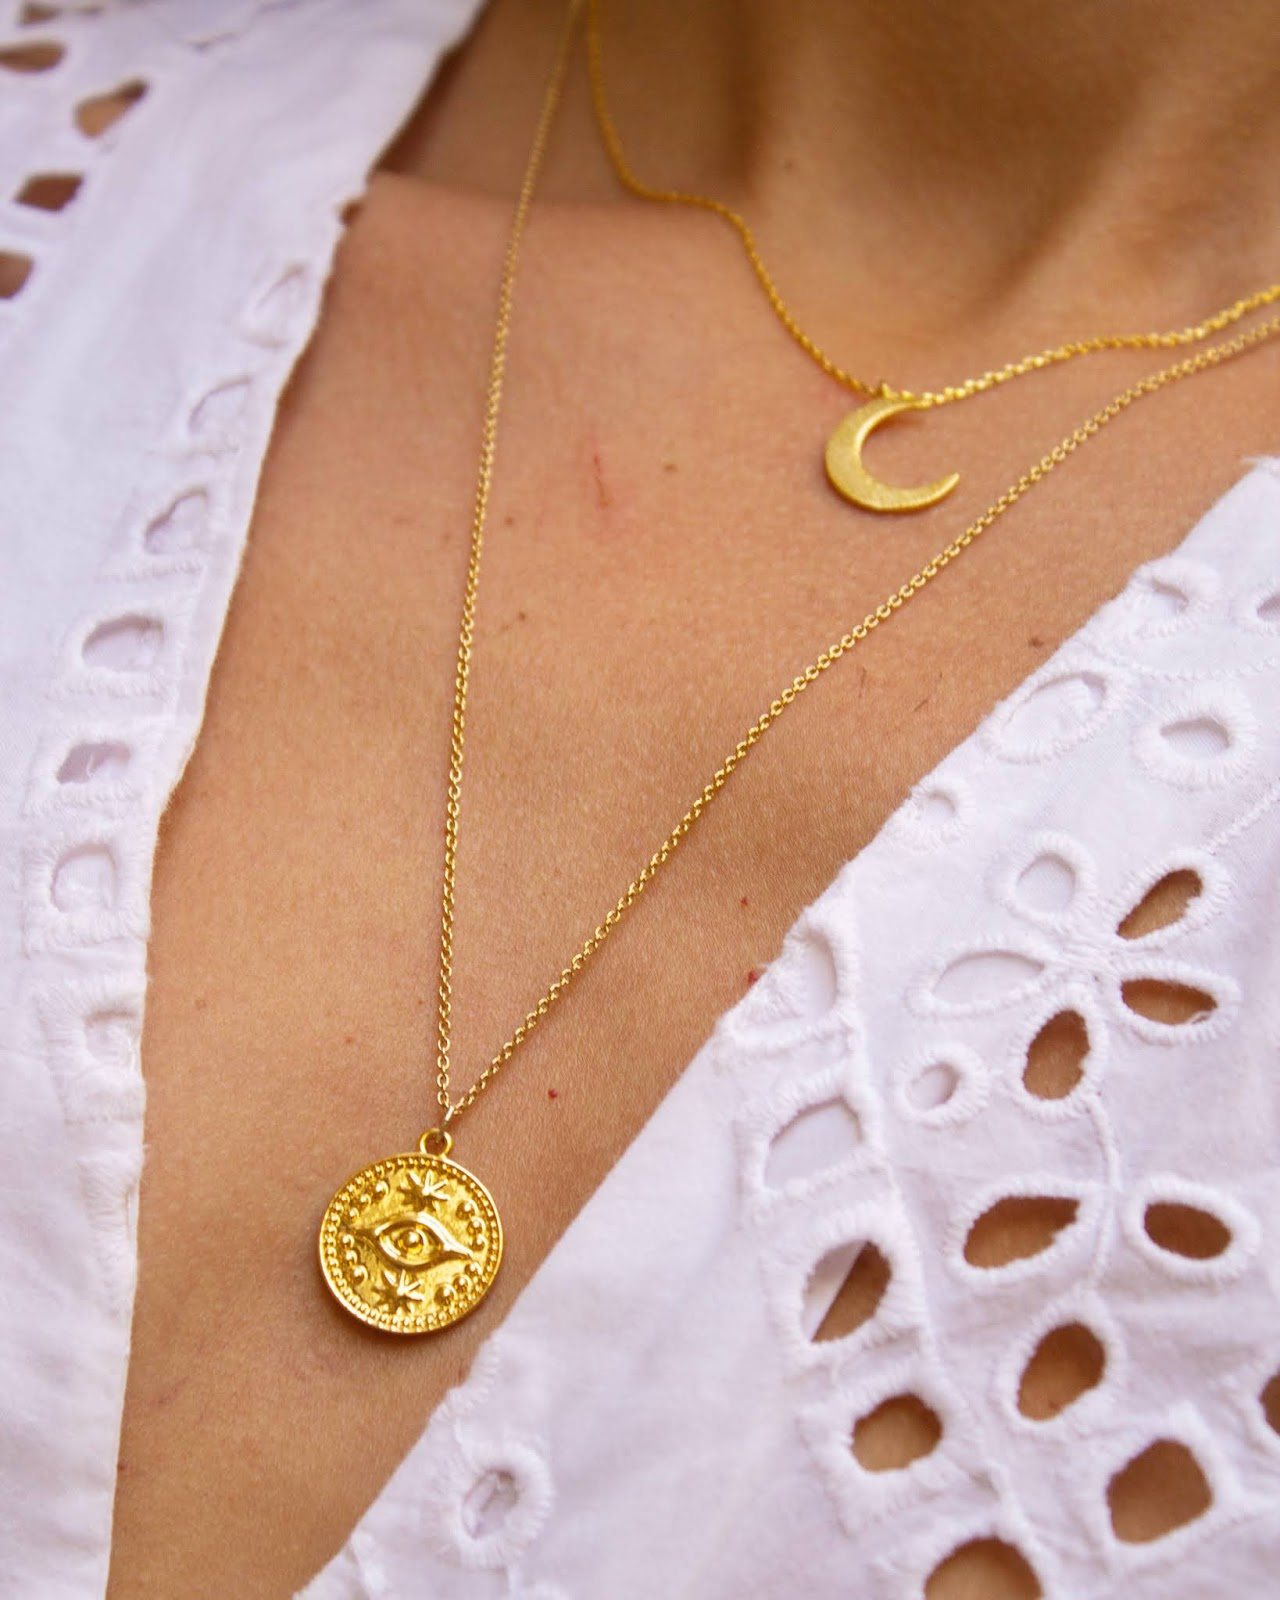 pico the store, pico jewellery, nazar, evil eye, hand of fatima, necklace, handmade, artisan, gold plated, gift idea, necklace layering, layered, boho